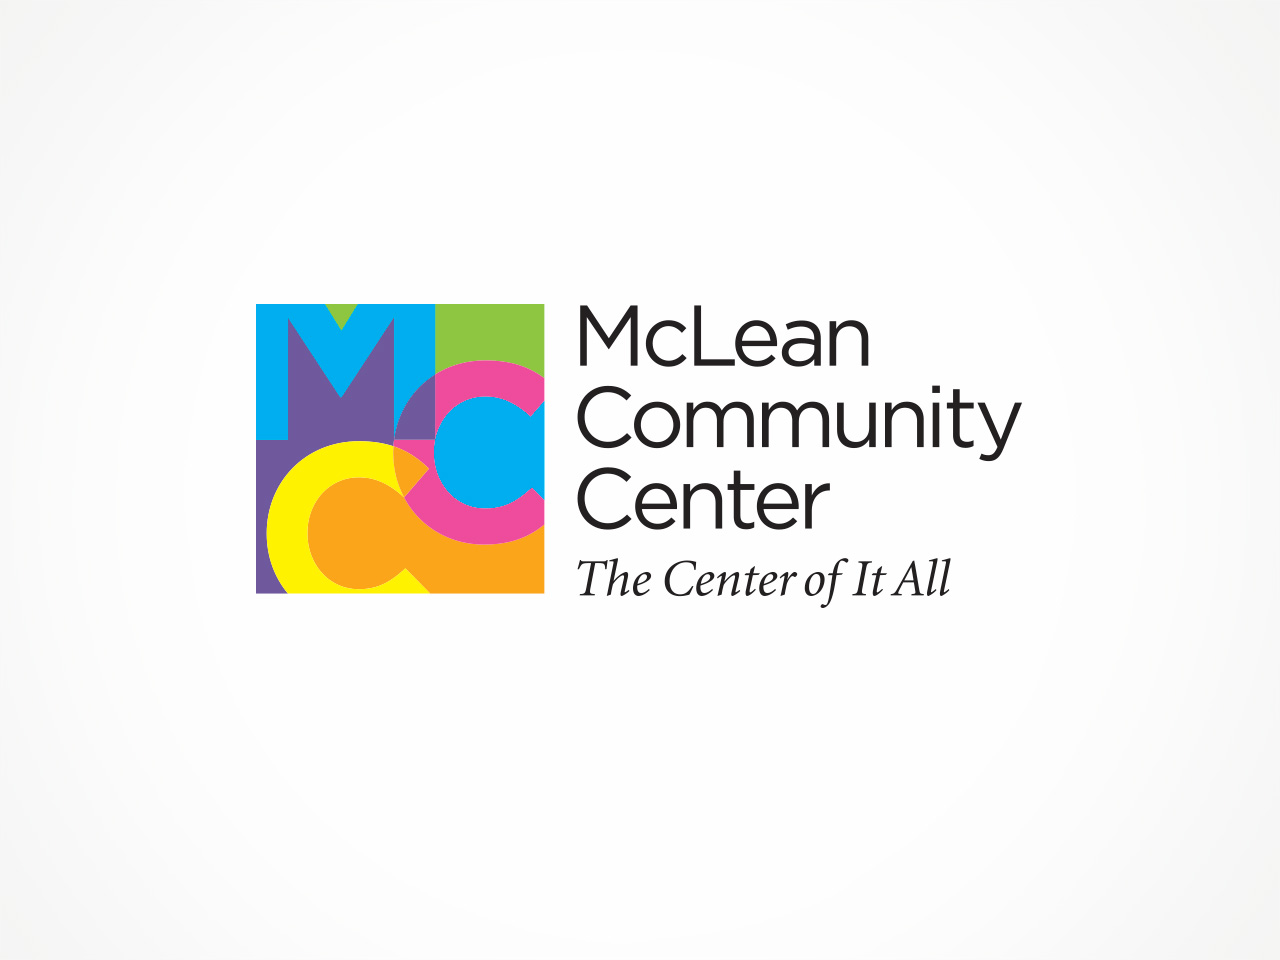 McLean Community Center logo